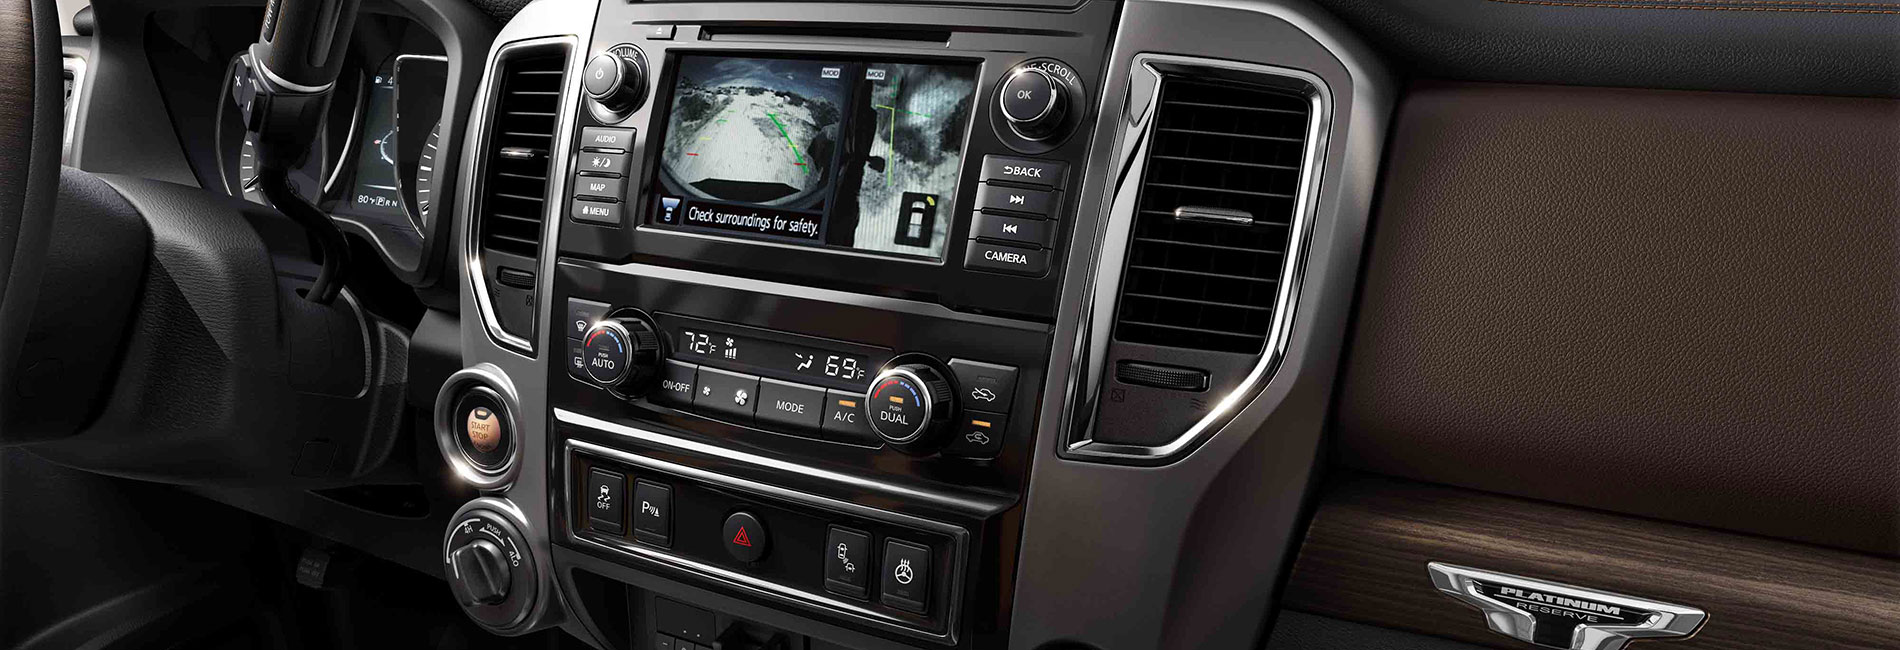 Nissan Titan Interior Vehicle Features